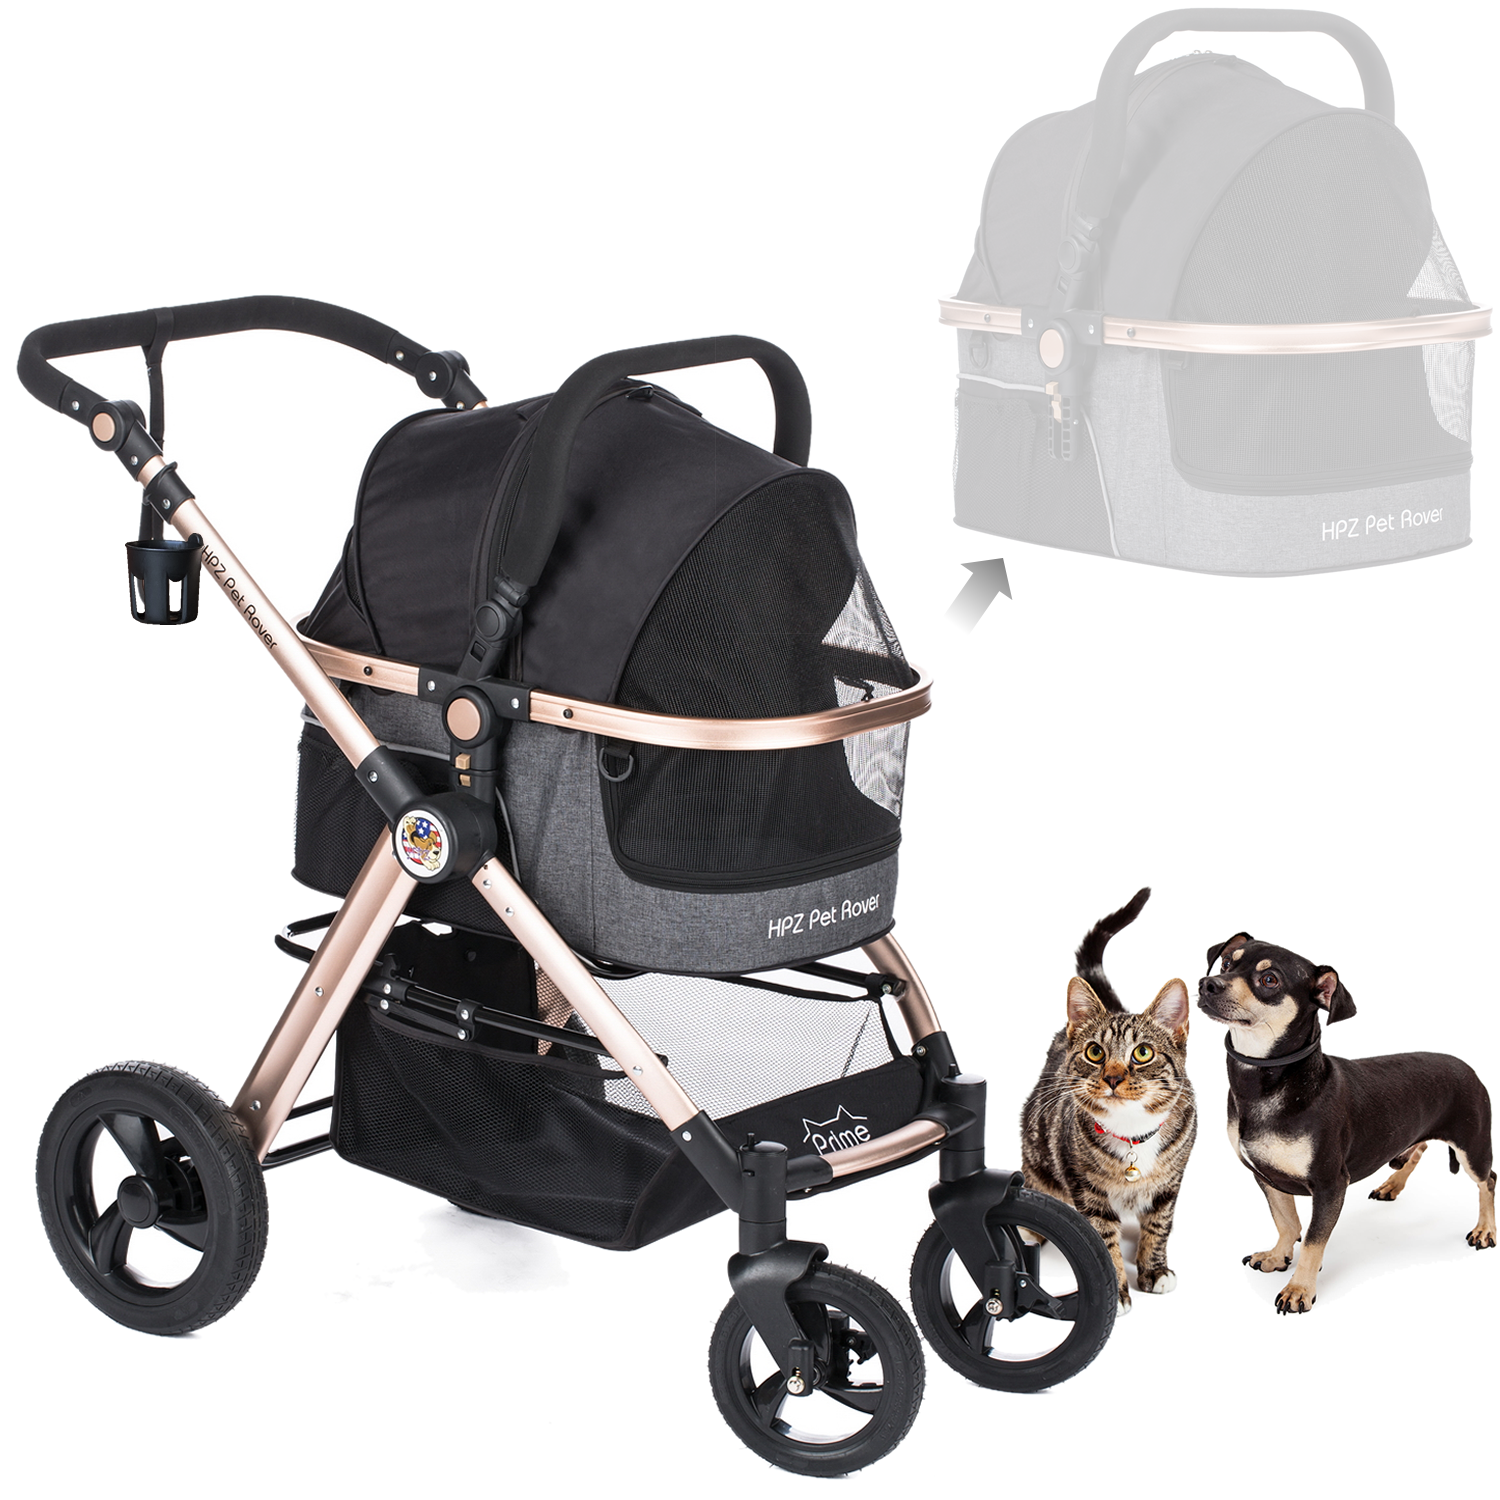 PRIME Luxury 3in1 Stroller for Small/Medium Dogs, Cats